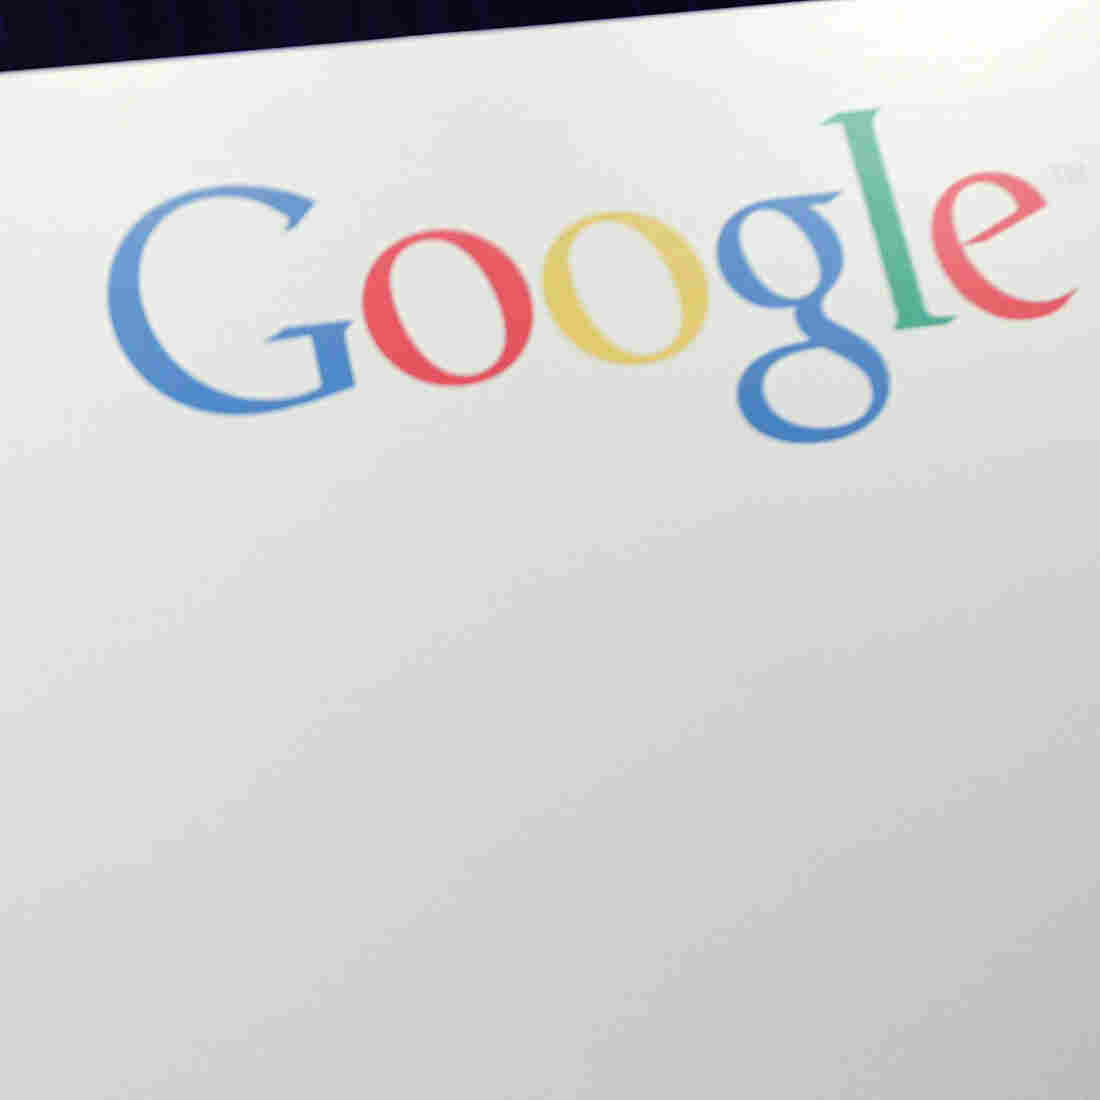 Trouble Ahead? Searching For Google's Future